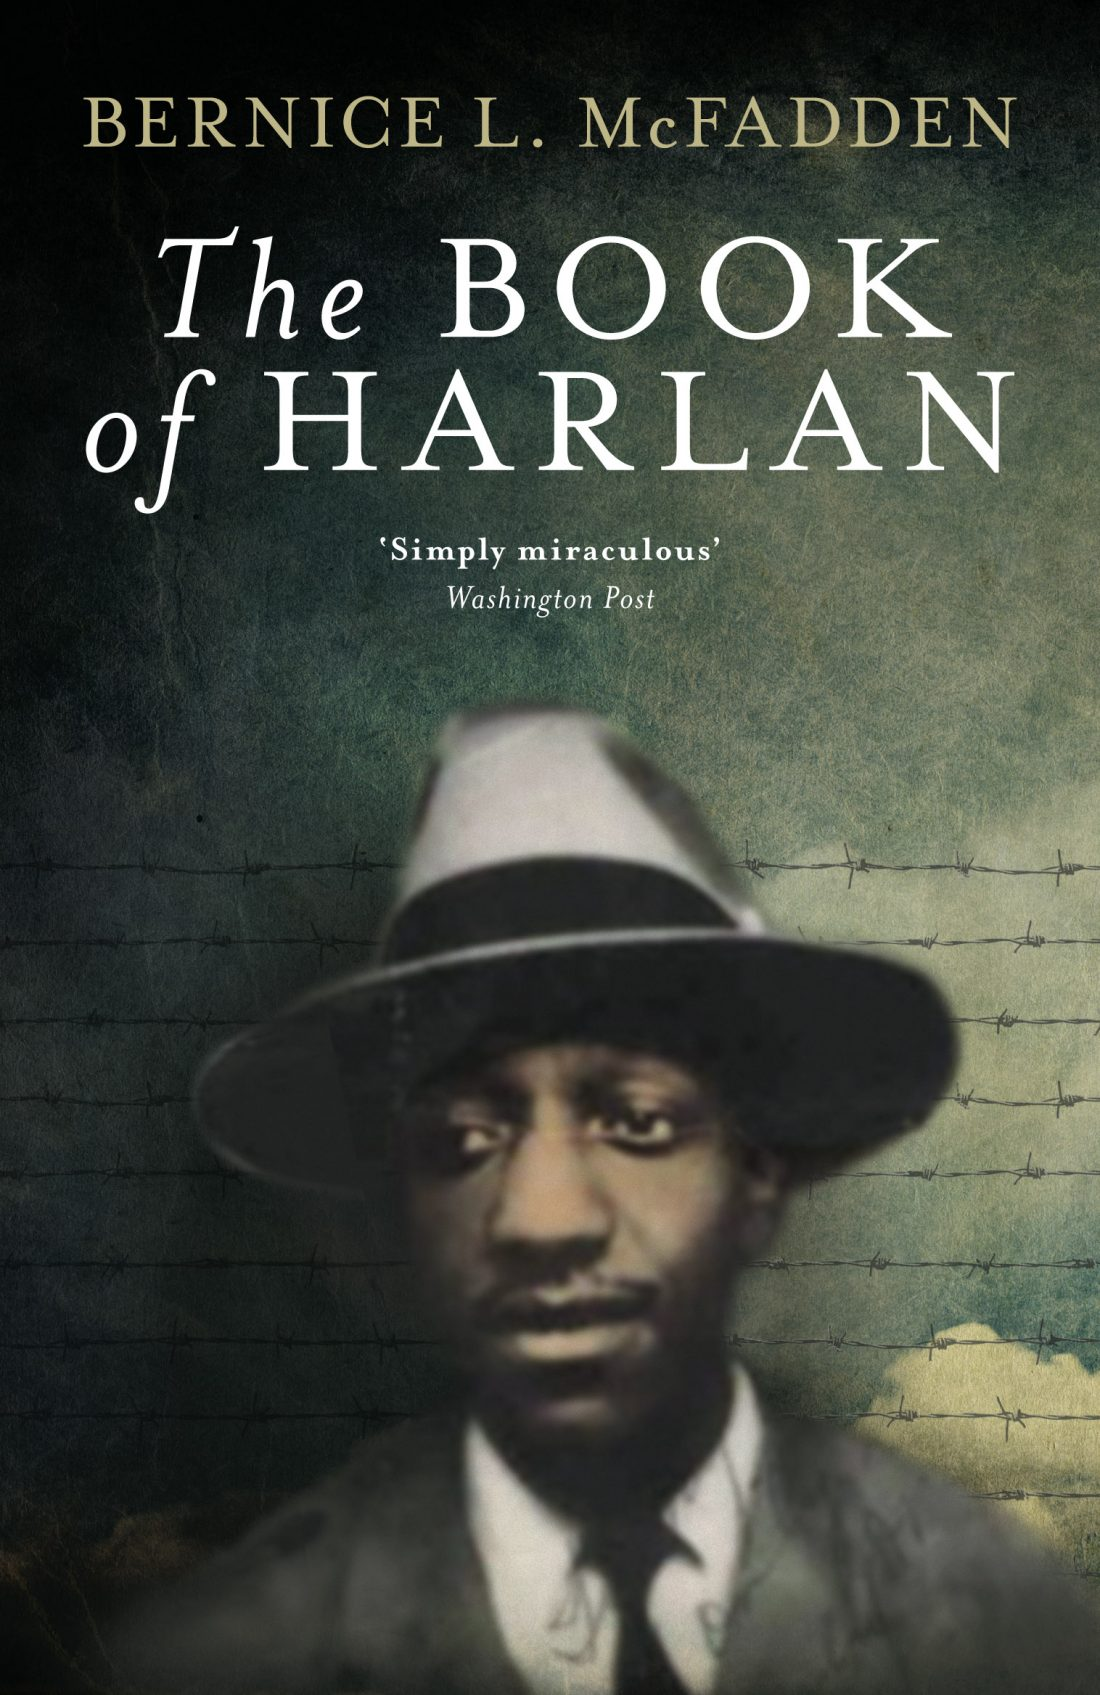 Book of the week: The Book of Harlan